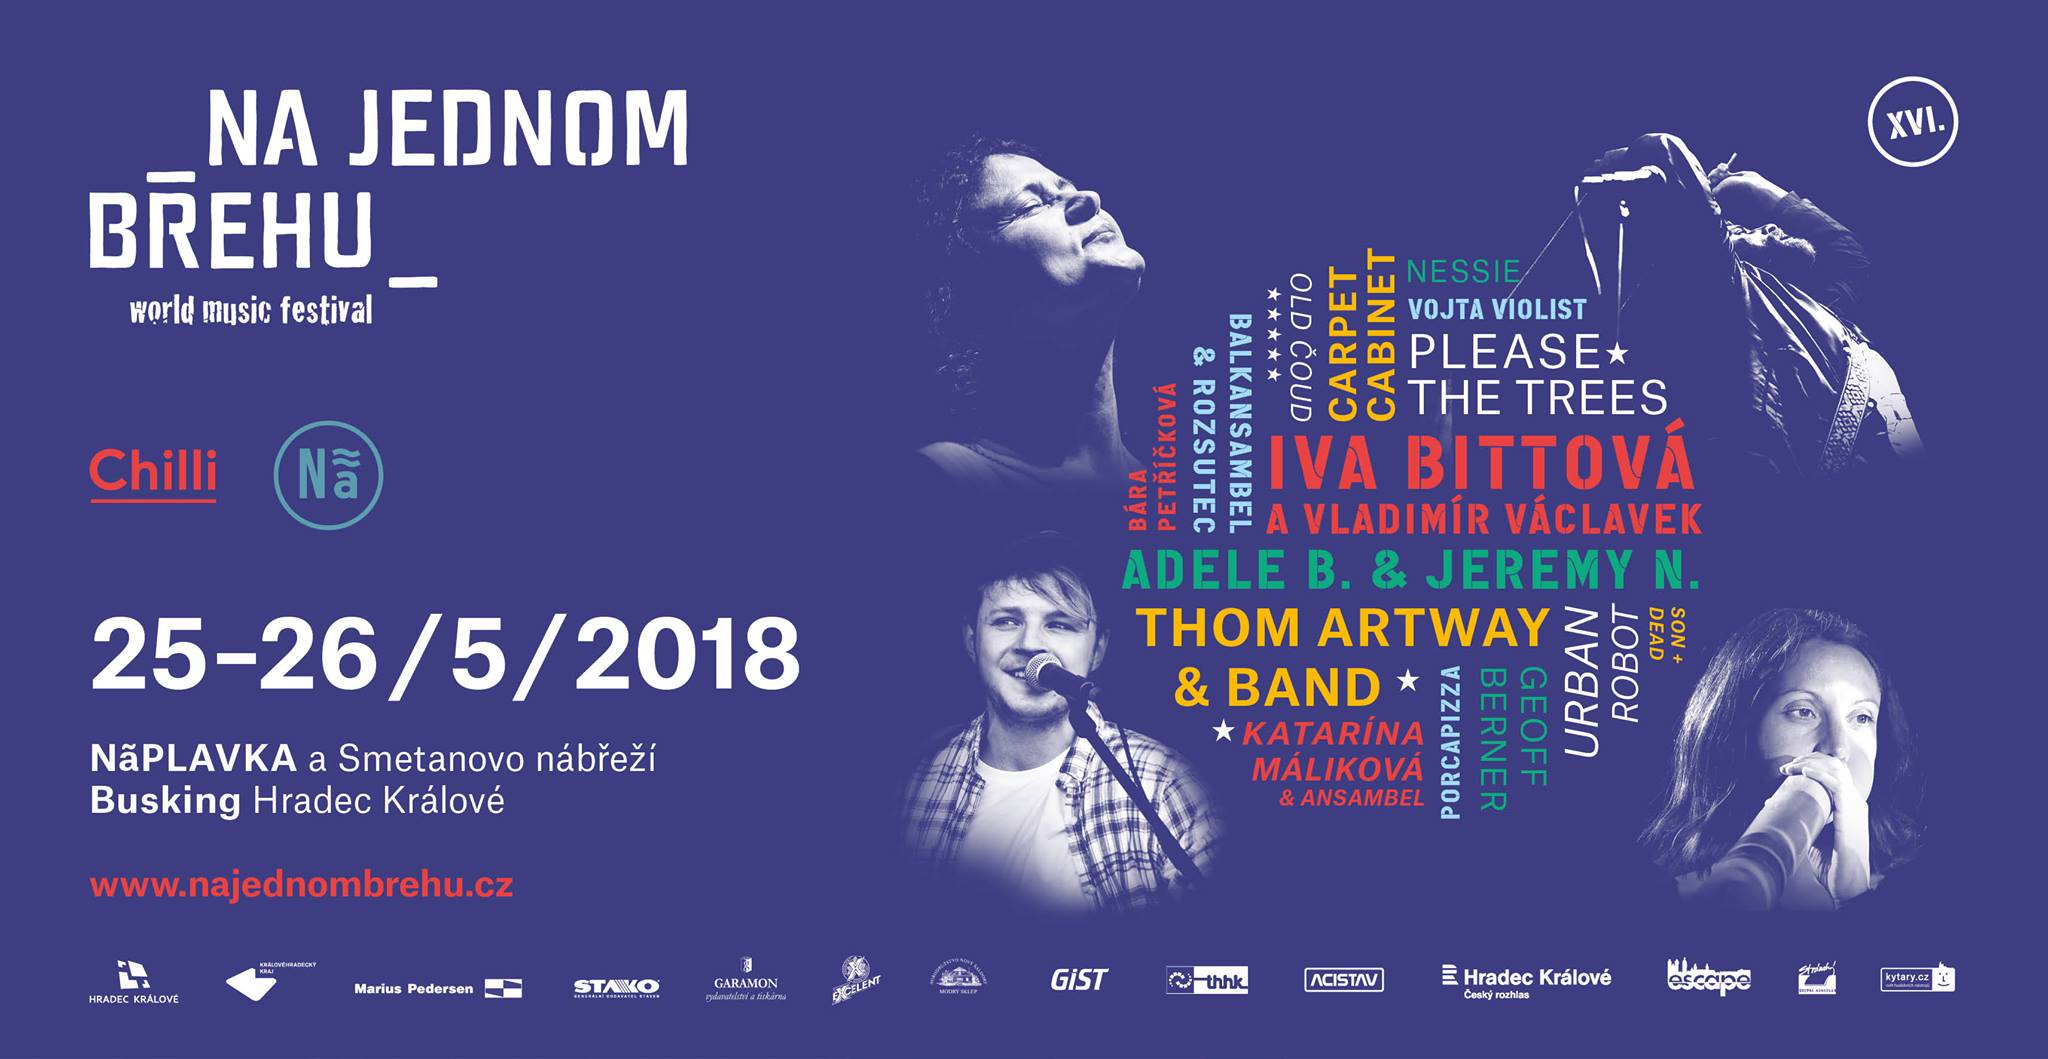 Na jednom břehu / world music festival